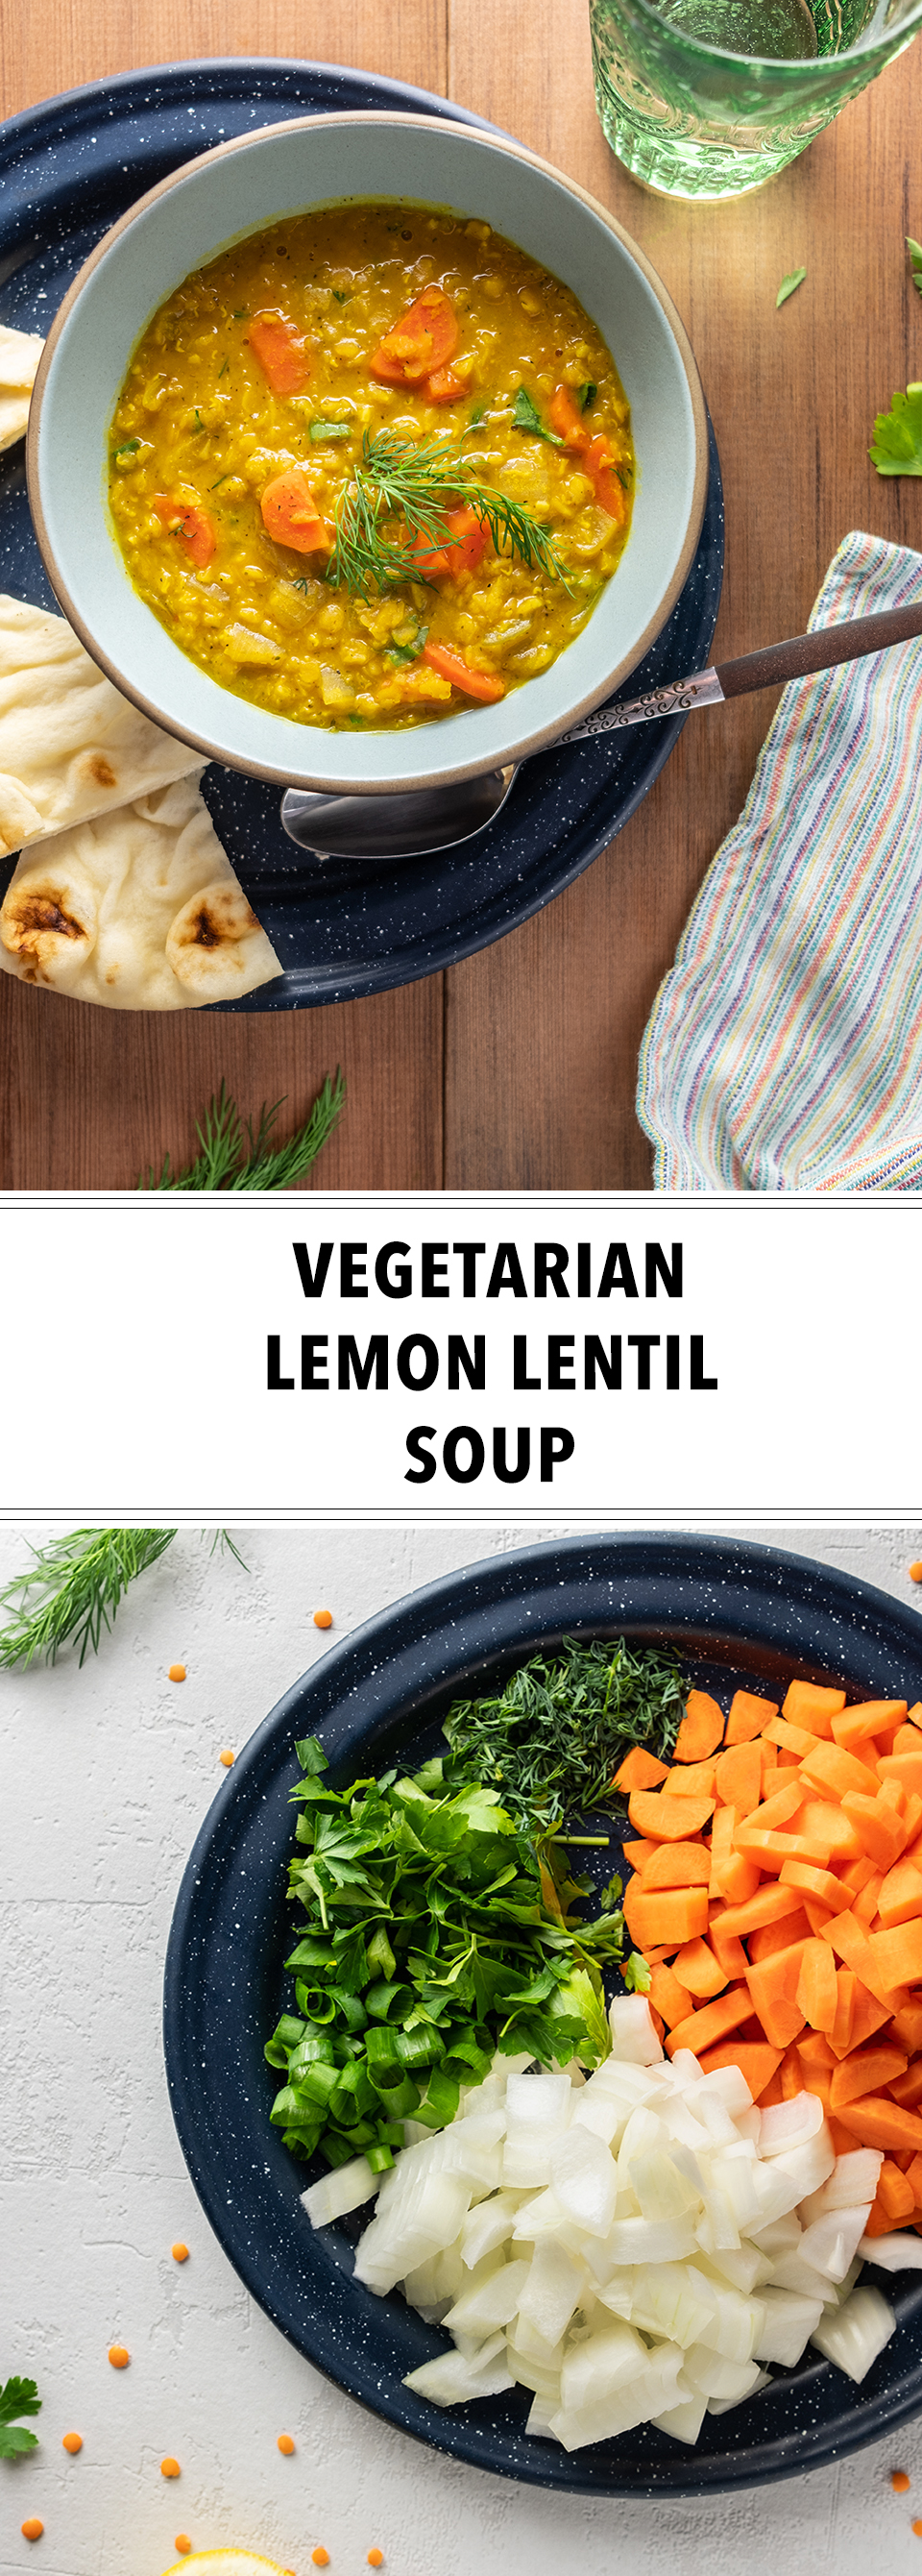 JodiLoves_Retouching_Brilliant_Pixel_Imaging_Vegetarian-Lemon-Lentil-Soup.jpg